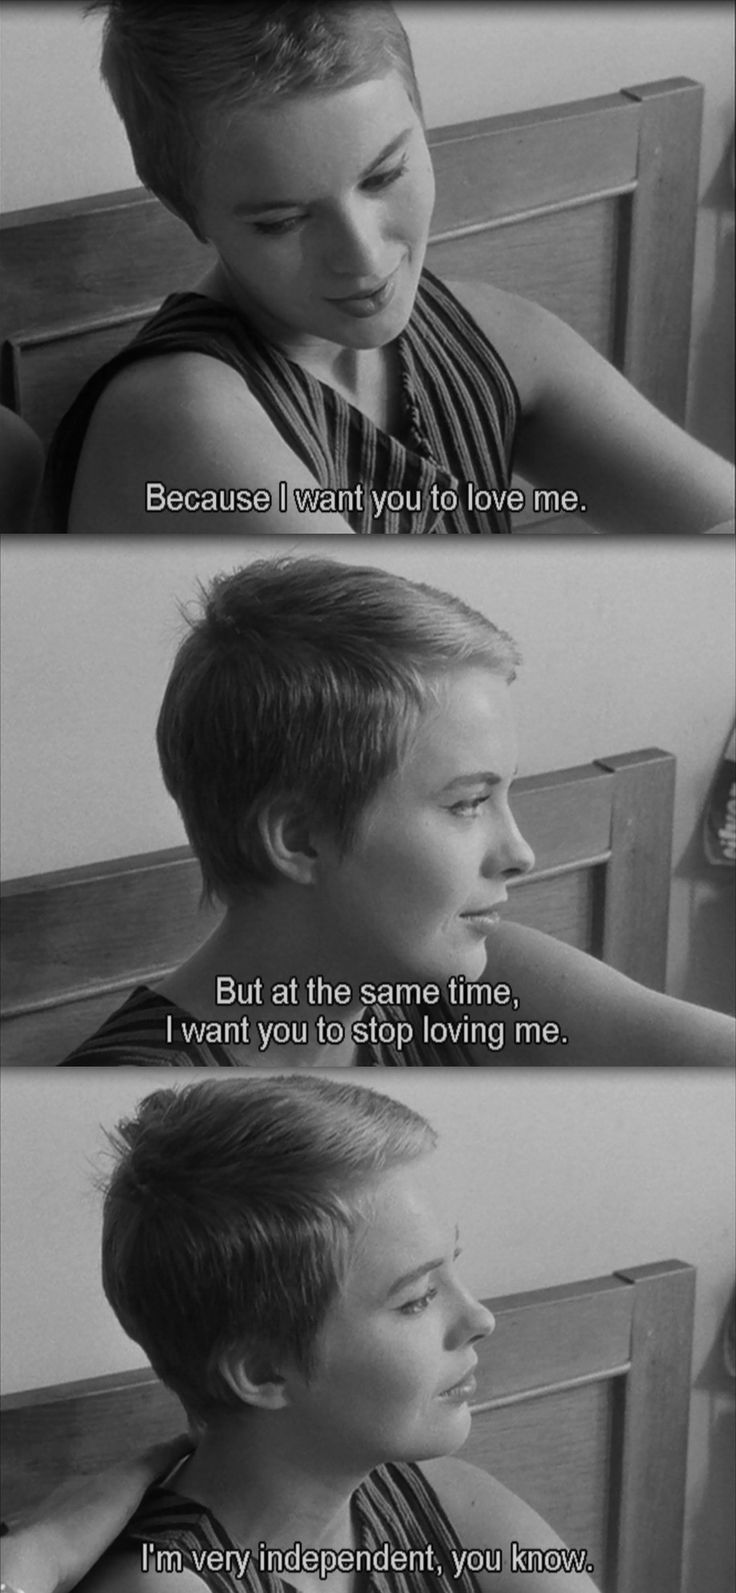 Jean-Luc Godard, 1960's Breathless (À bout de souffle) French Film. I love this quote gotta watch it! :)